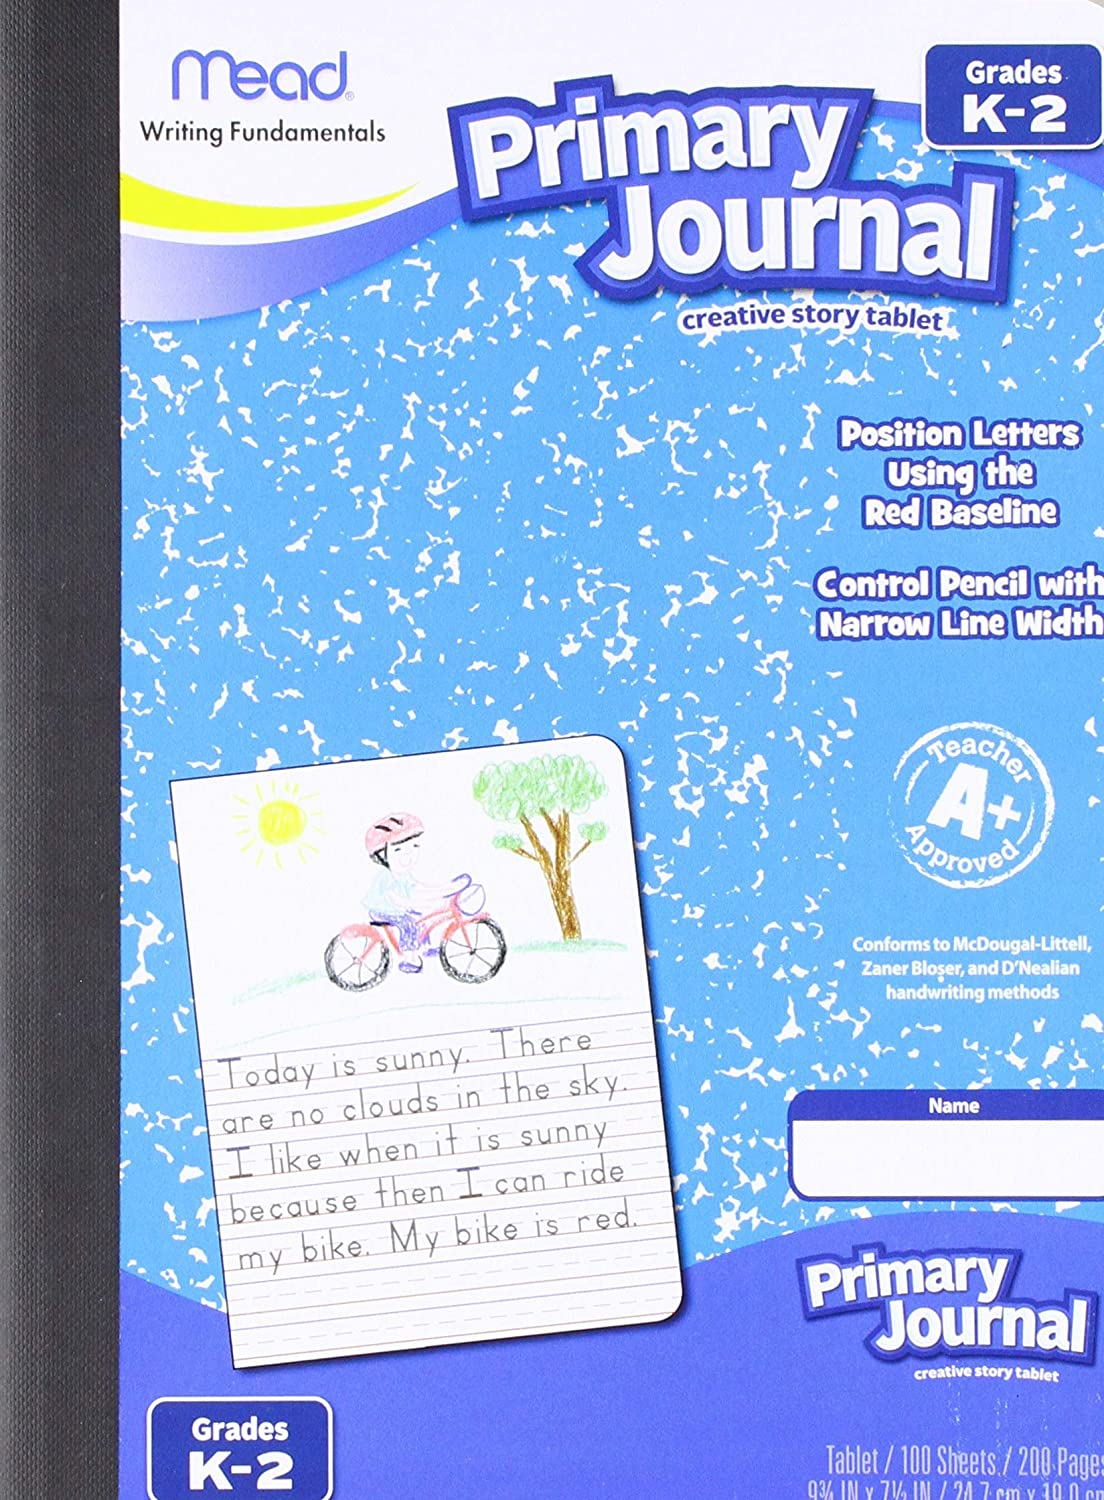 6 Pack Grades K-2 Multi Mead CASE of 6 Primary Journal Creative Story Tablet BC-15773 09554